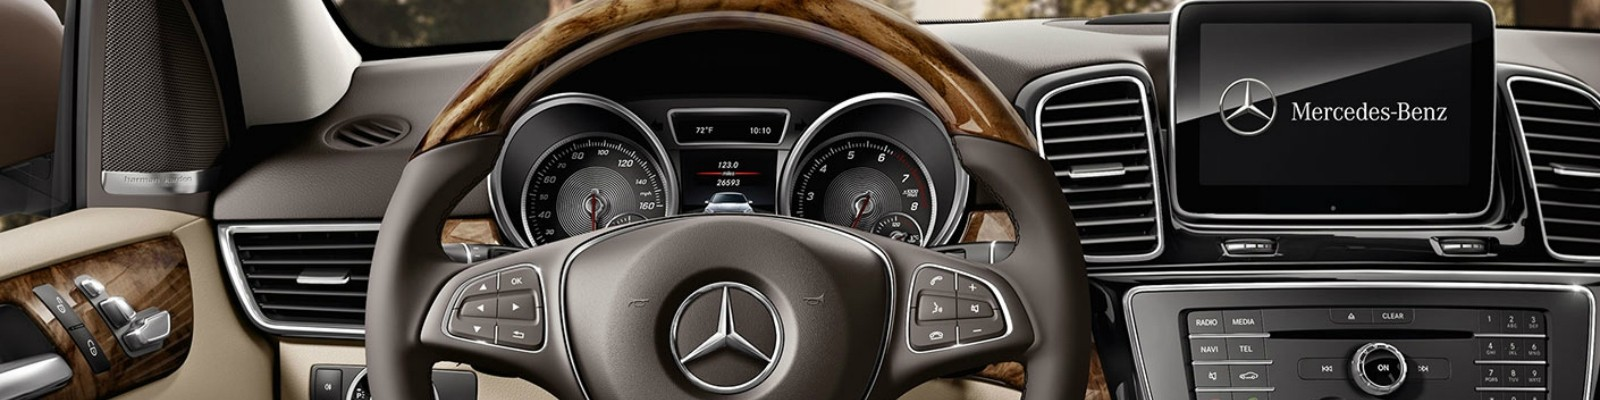 120565-Walters-Automotive-2018-GLE-SUV-dashboard